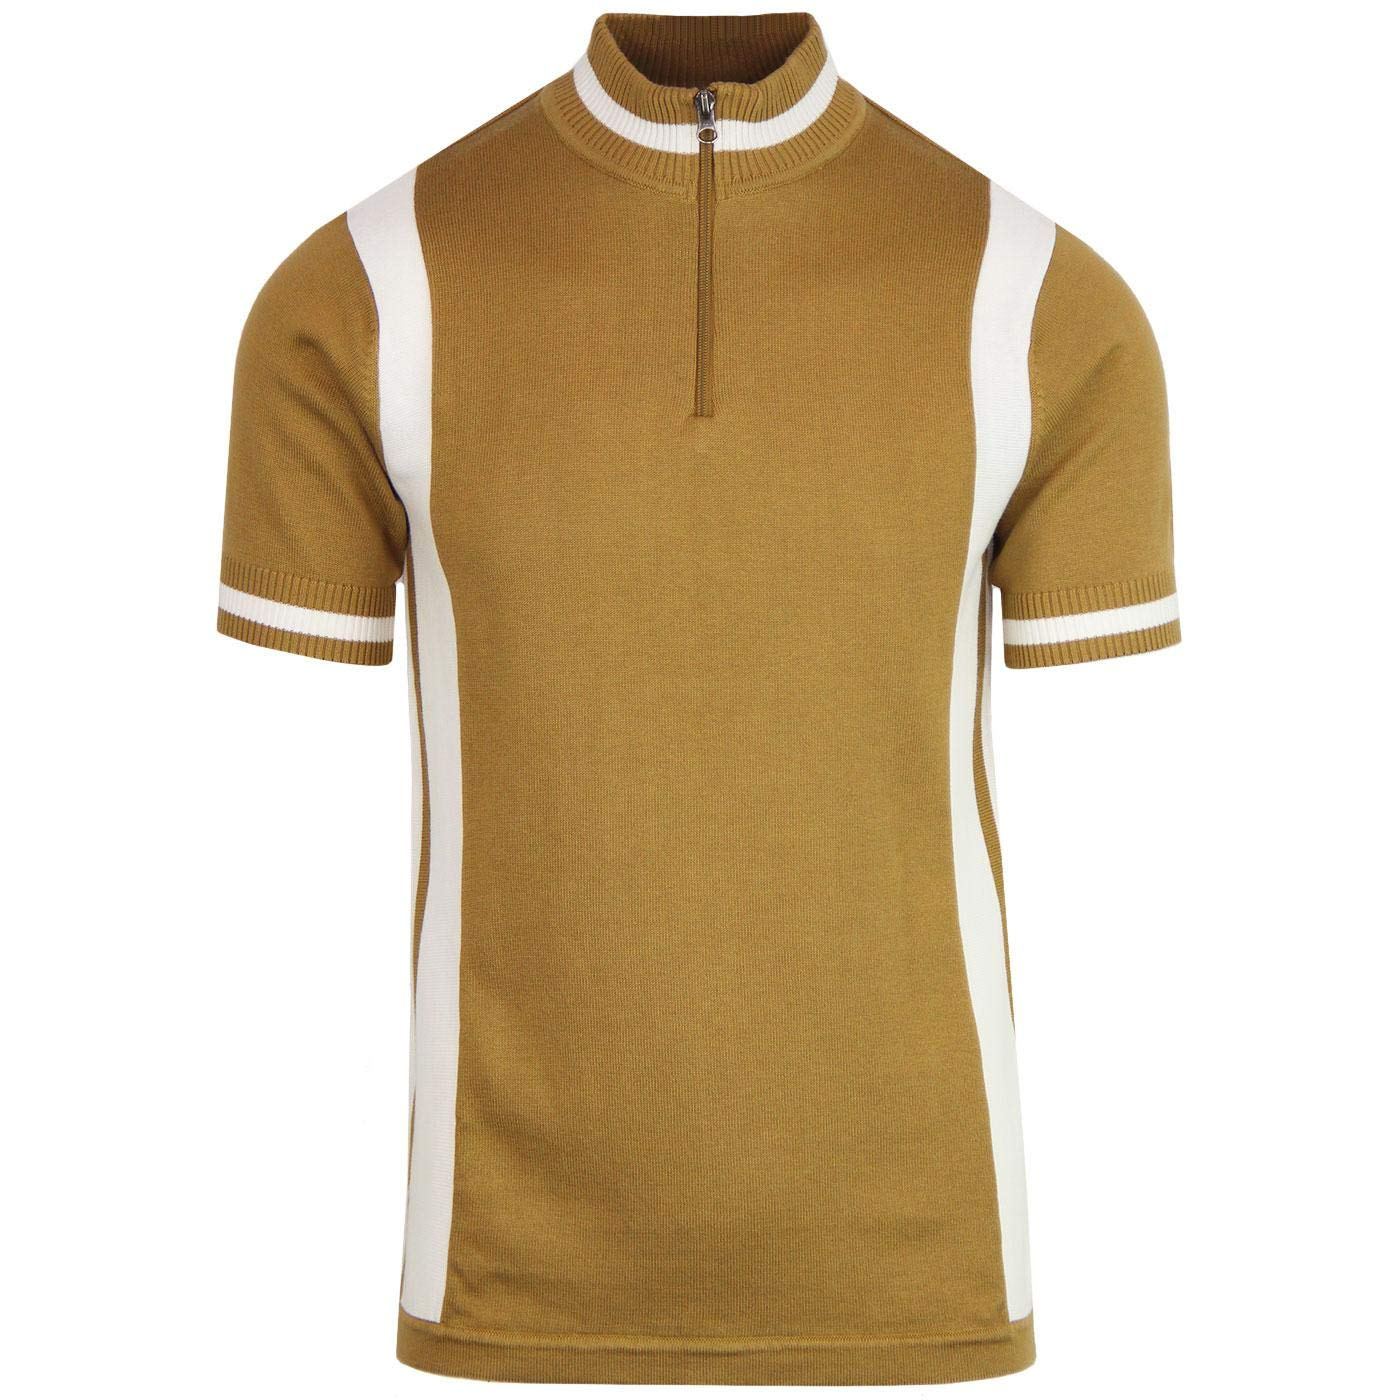 60s 70s Men's Clothing UK | Shirts, Trousers, Shoes Madcap England Vitesse Mens Retro 60s Knitted Cycling Top with Zip Funnel Neck £34.99 AT vintagedancer.com